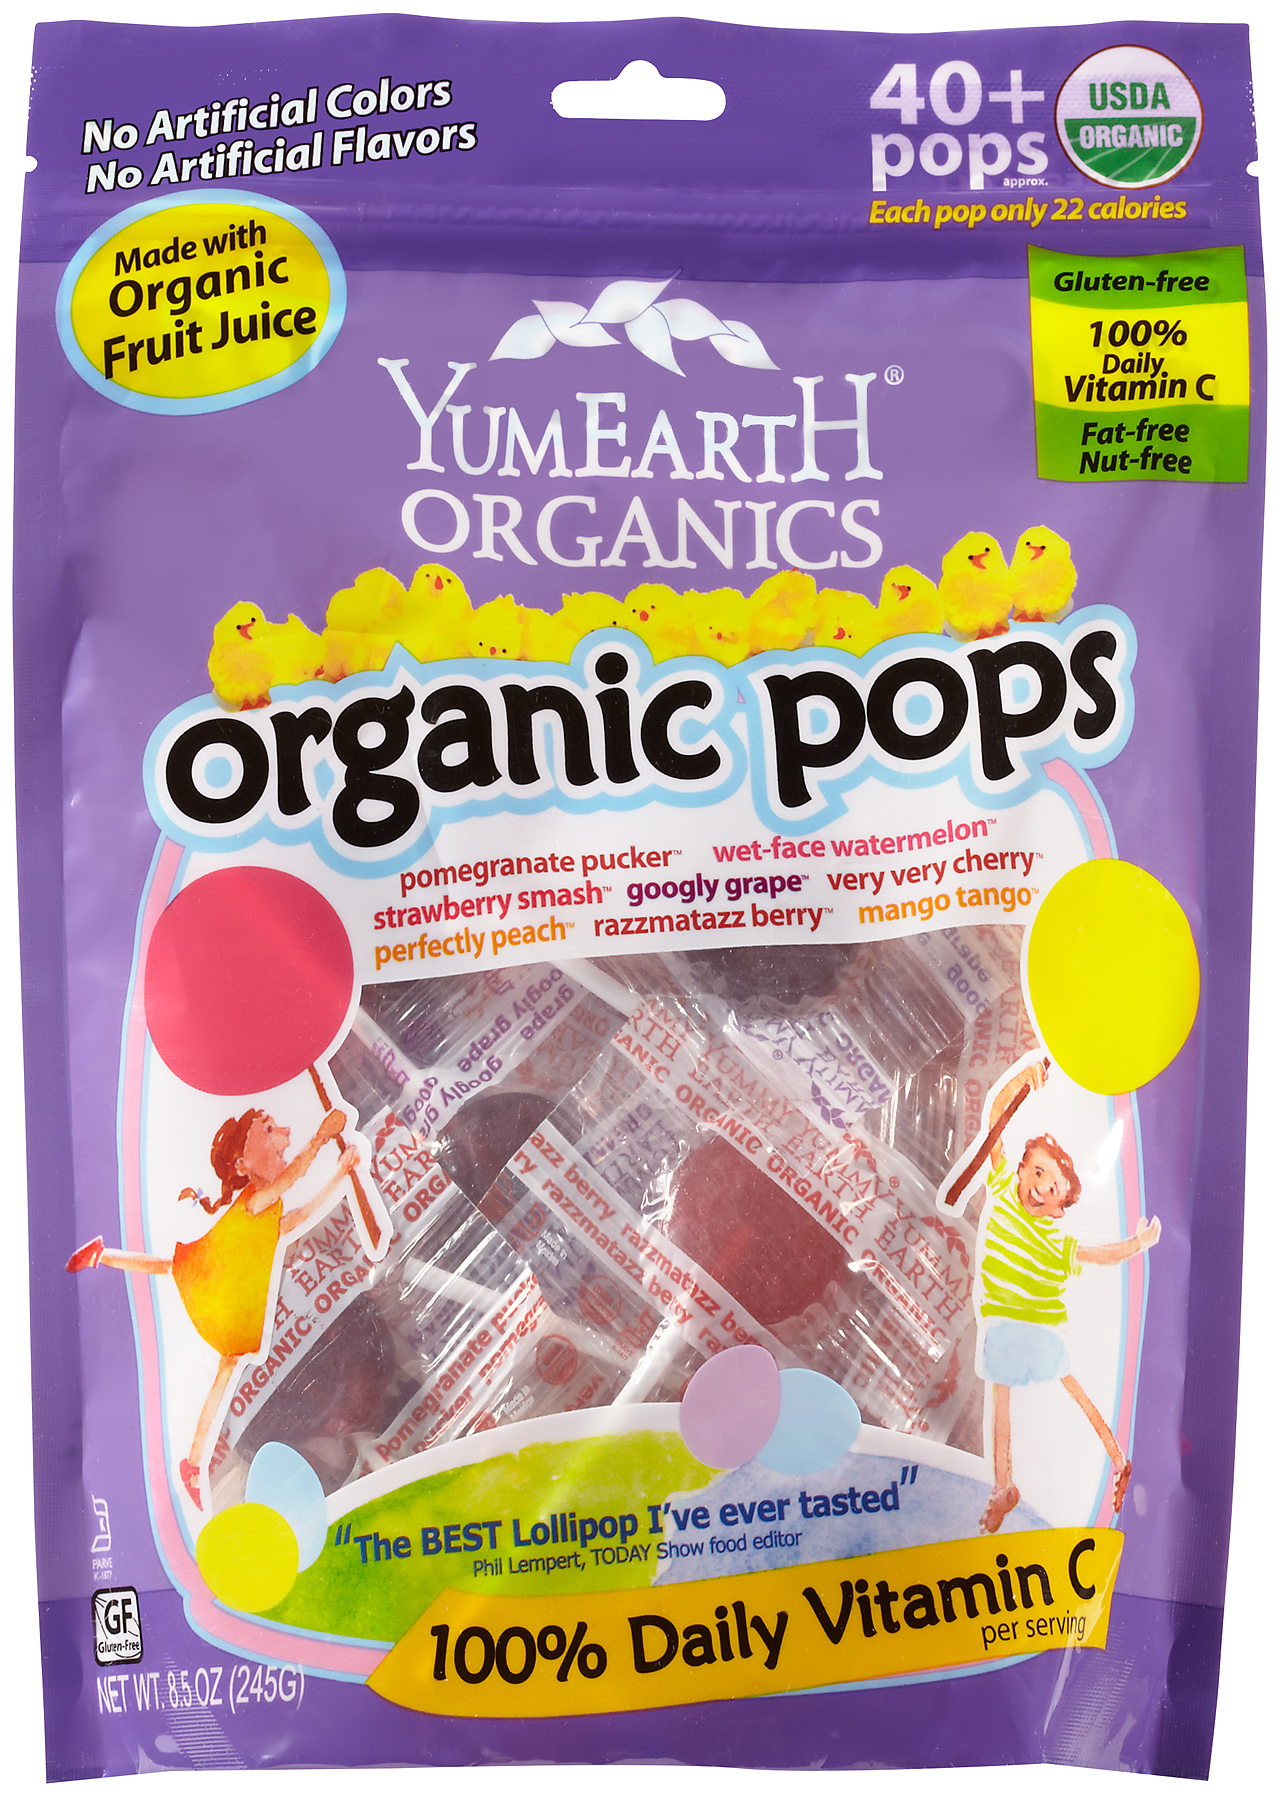 Organic Easter Candy